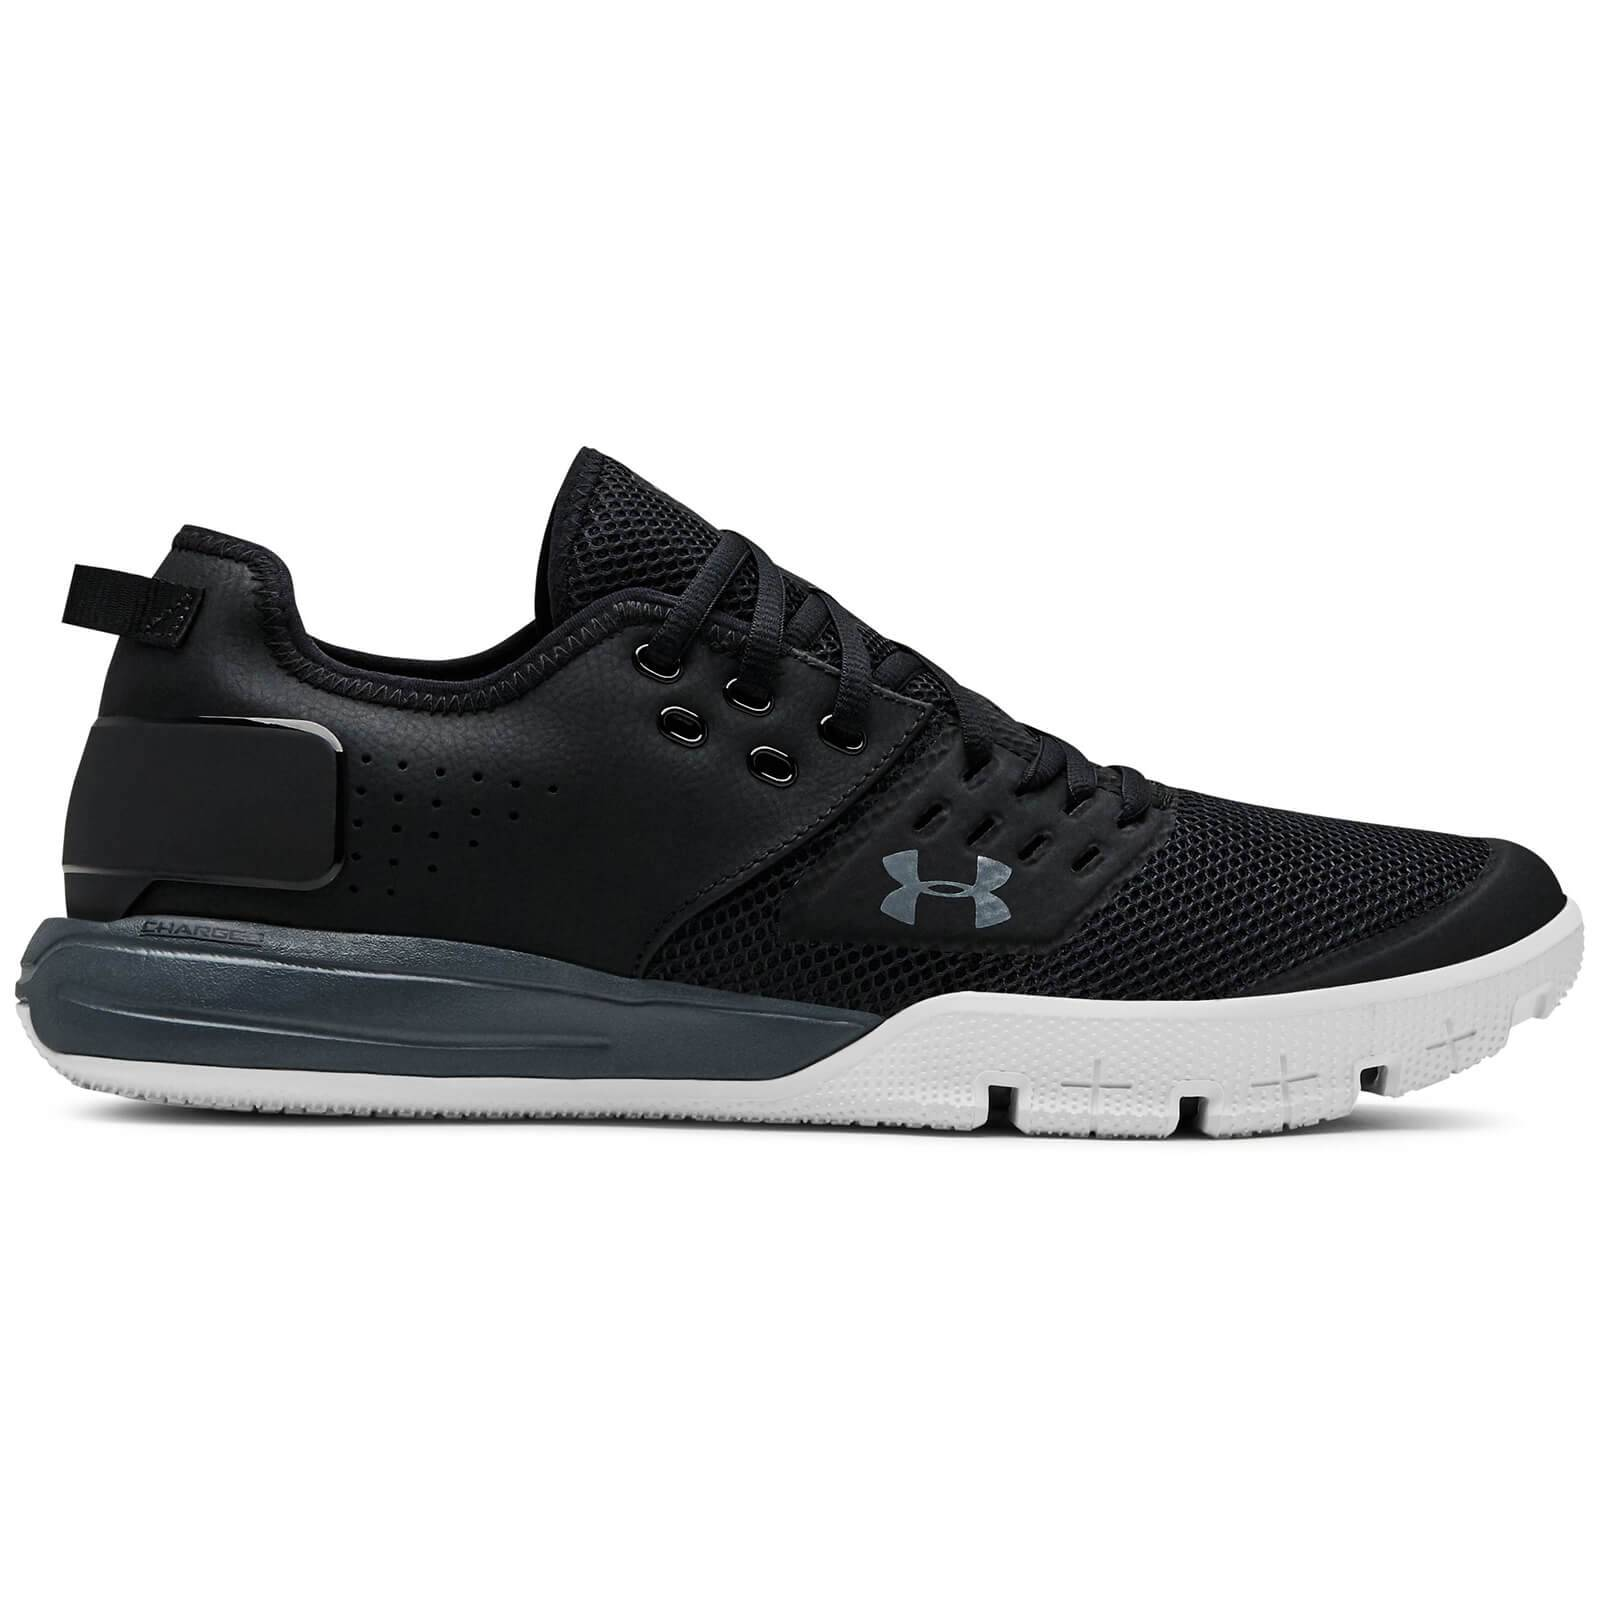 Under Armour Charged Ultimate 3.0 Training Shoes - US 10.5/UK 9.5 - Black